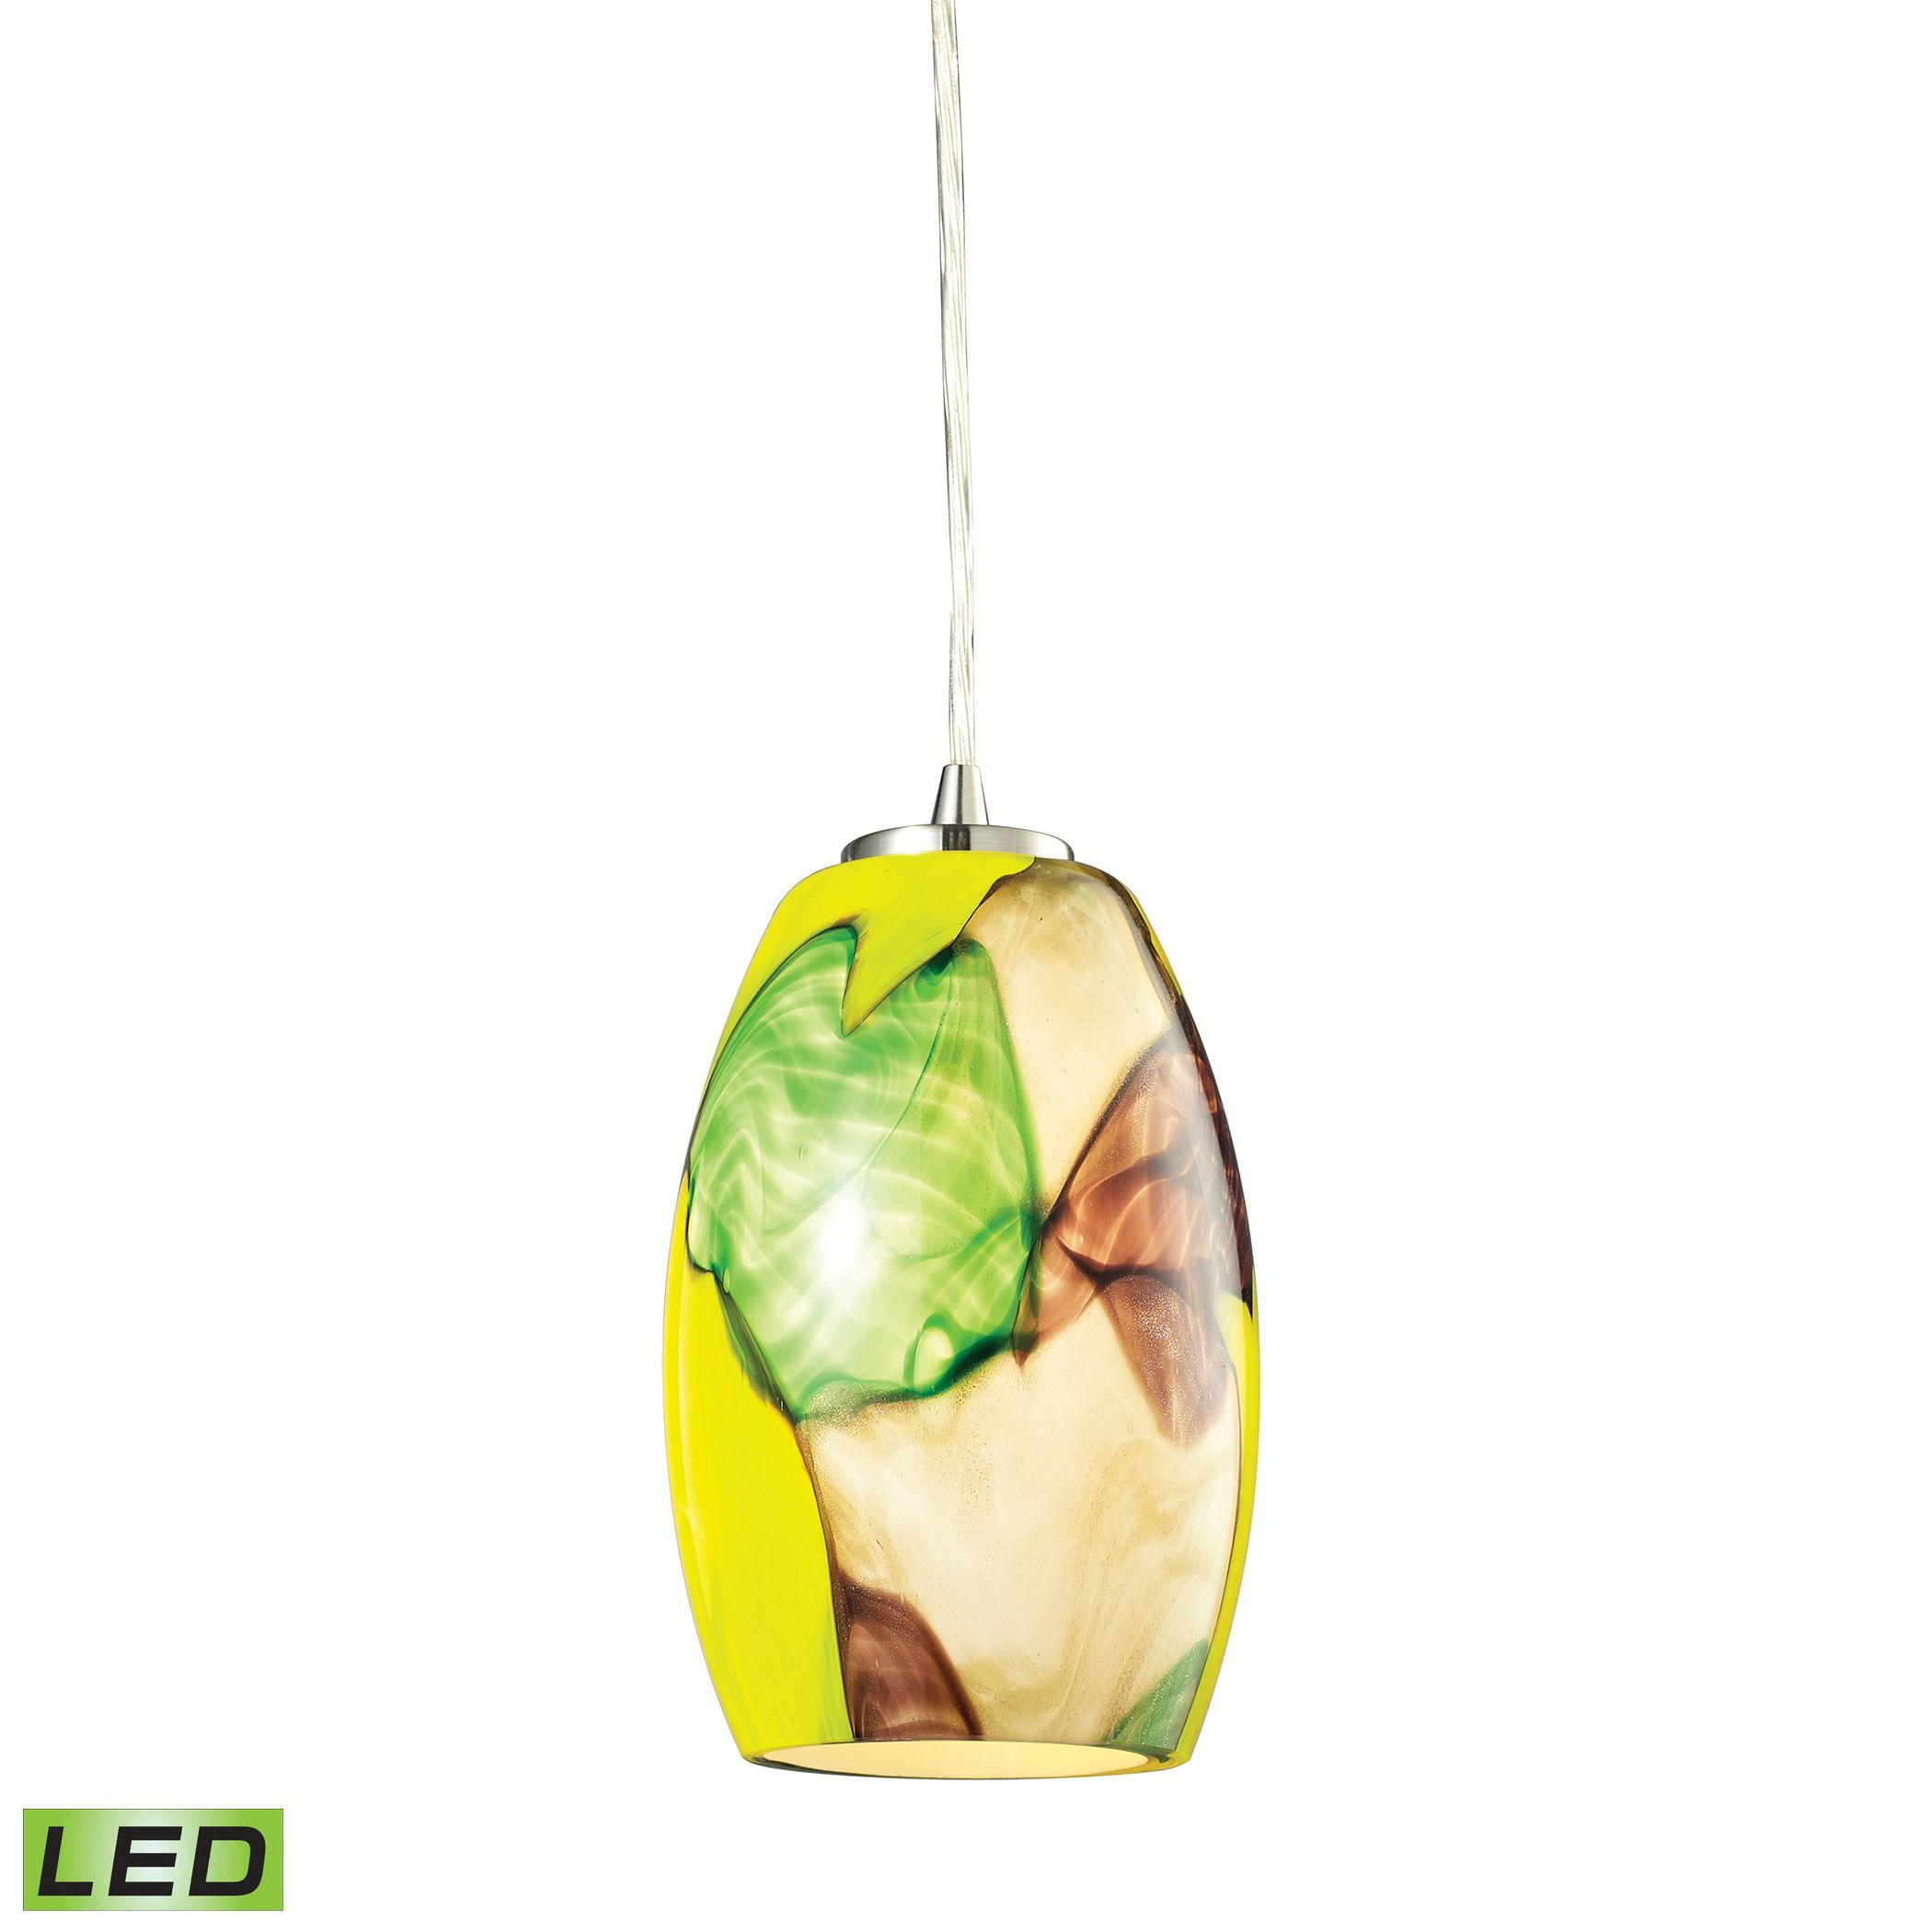 Surreal led light pendant in satin nickel and cream yellow elk